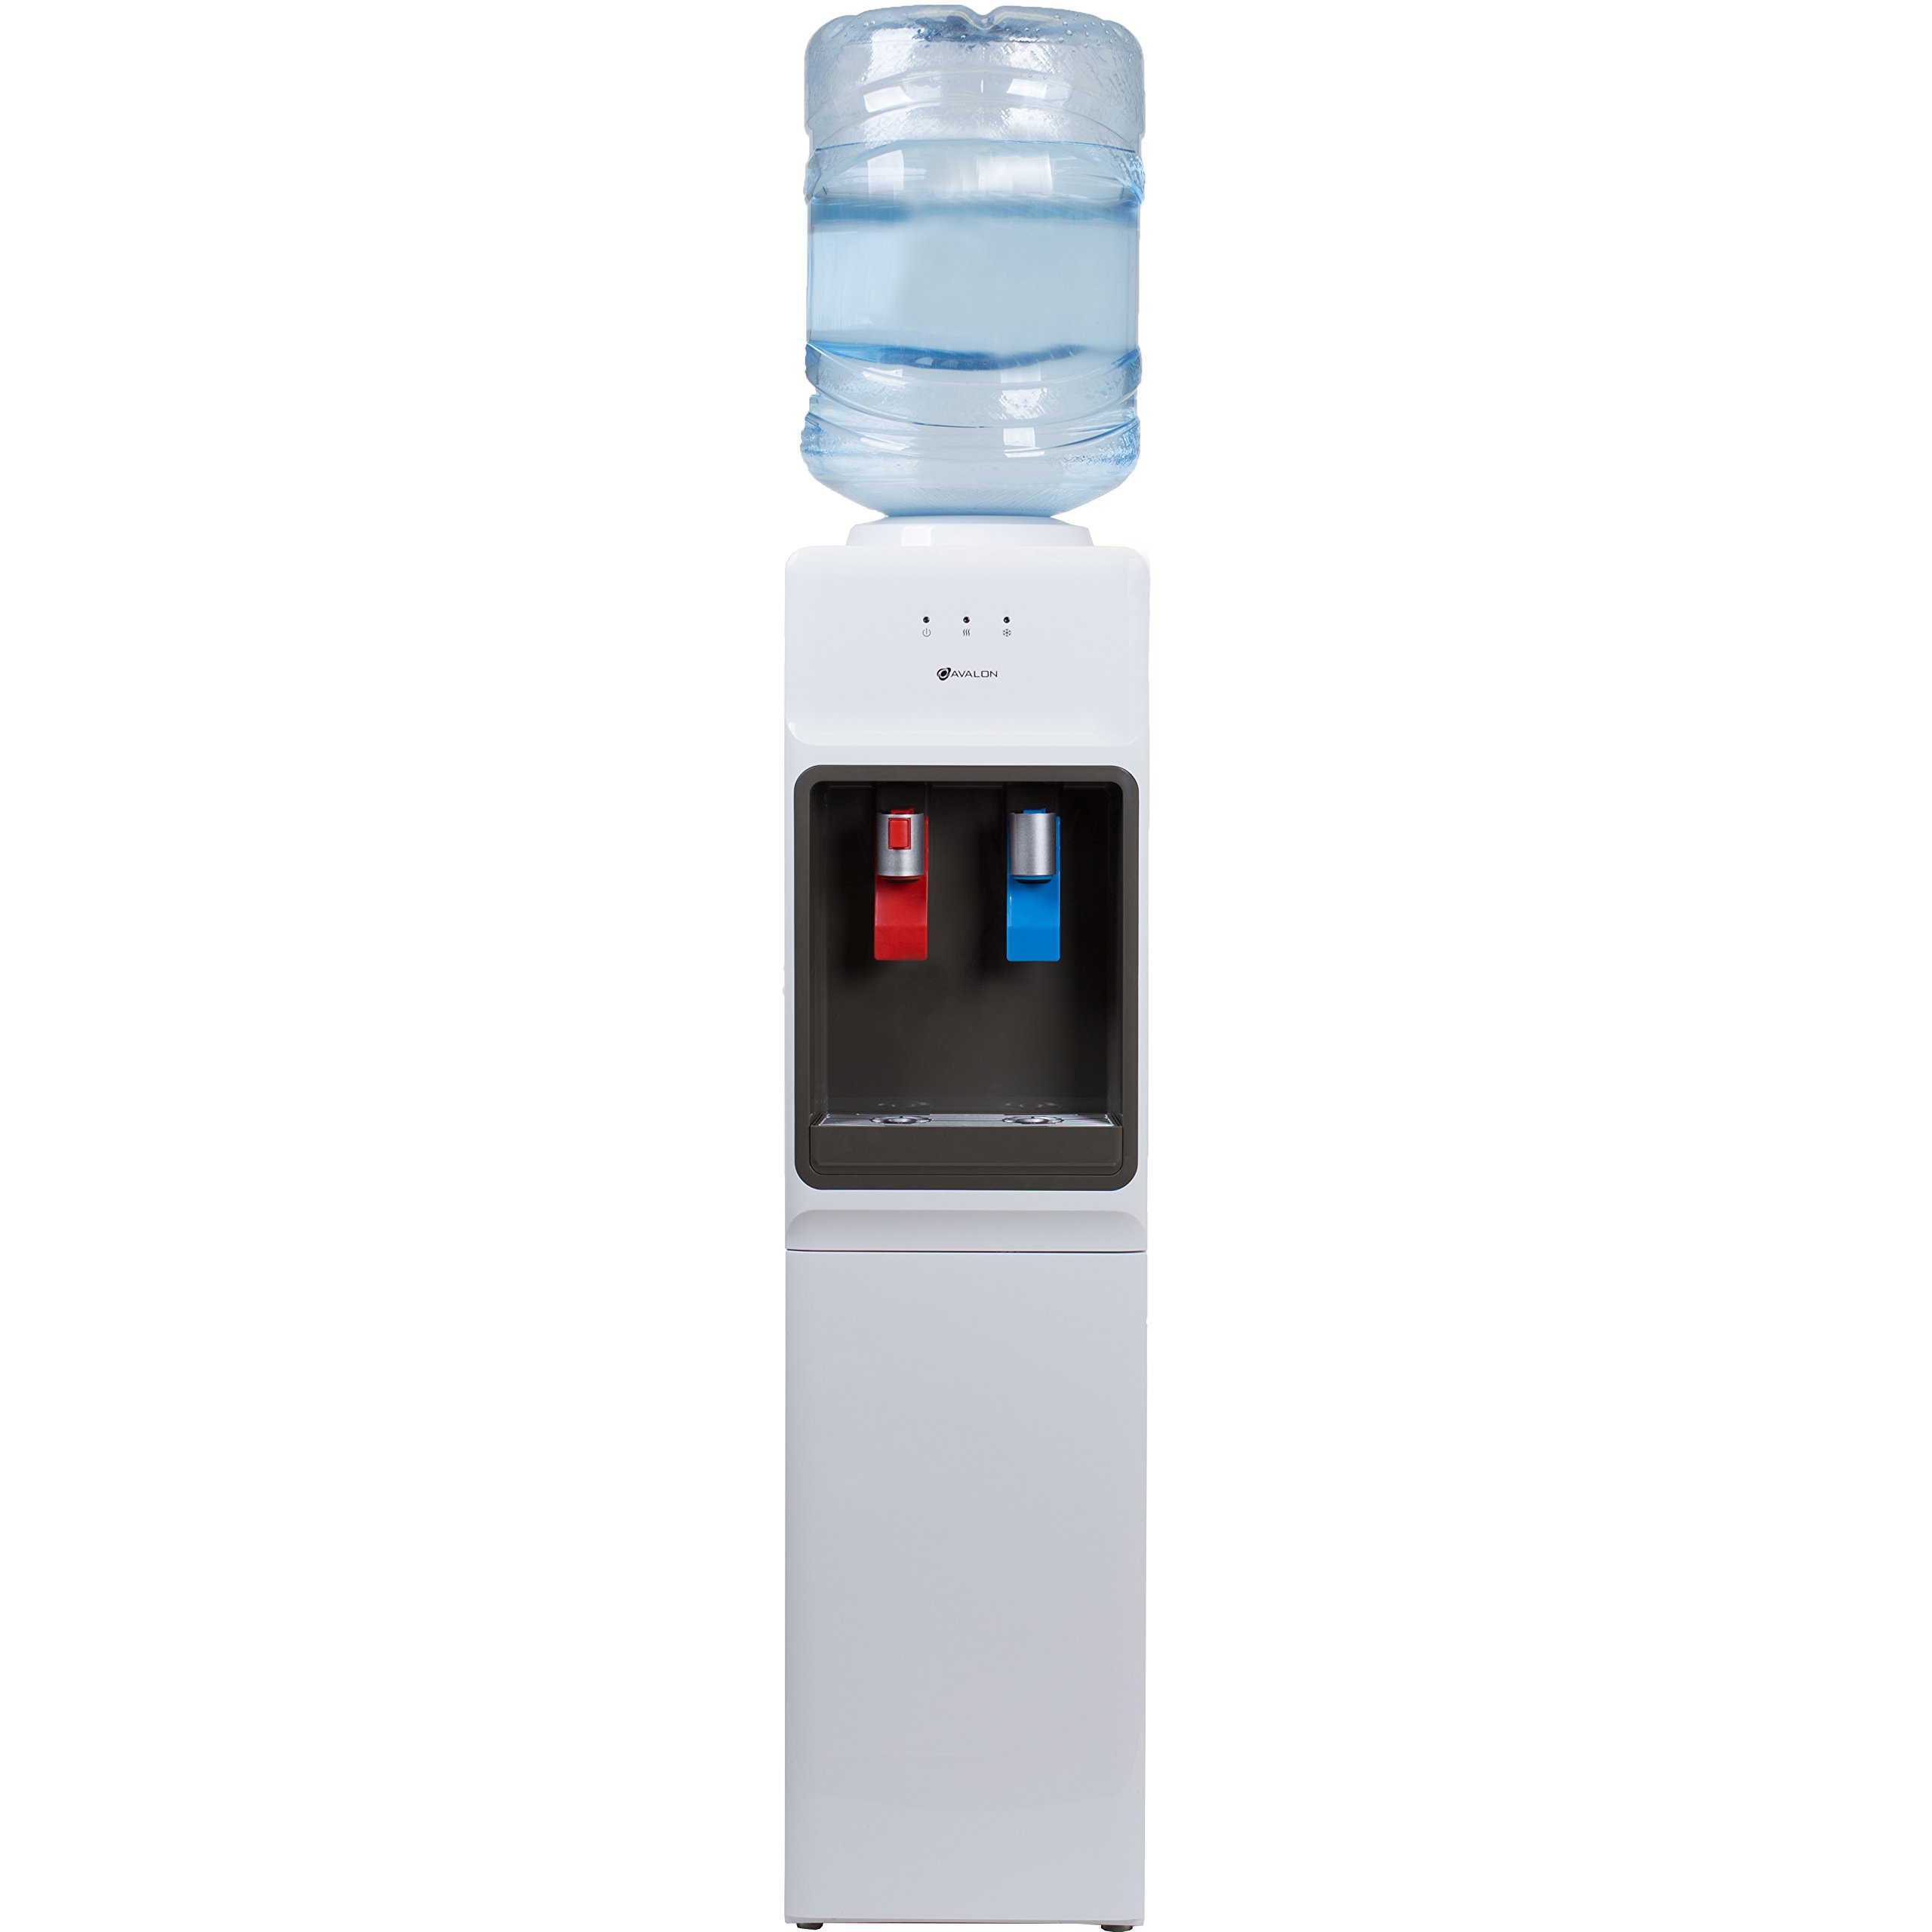 Avalon Top Loading Water Cooler Dispenser - Hot & Cold Water, Child Safety Lock, Innovative Slim Design, Holds 3 or 5 Gallon Bottles - UL/Energy Star Approved by Avalon